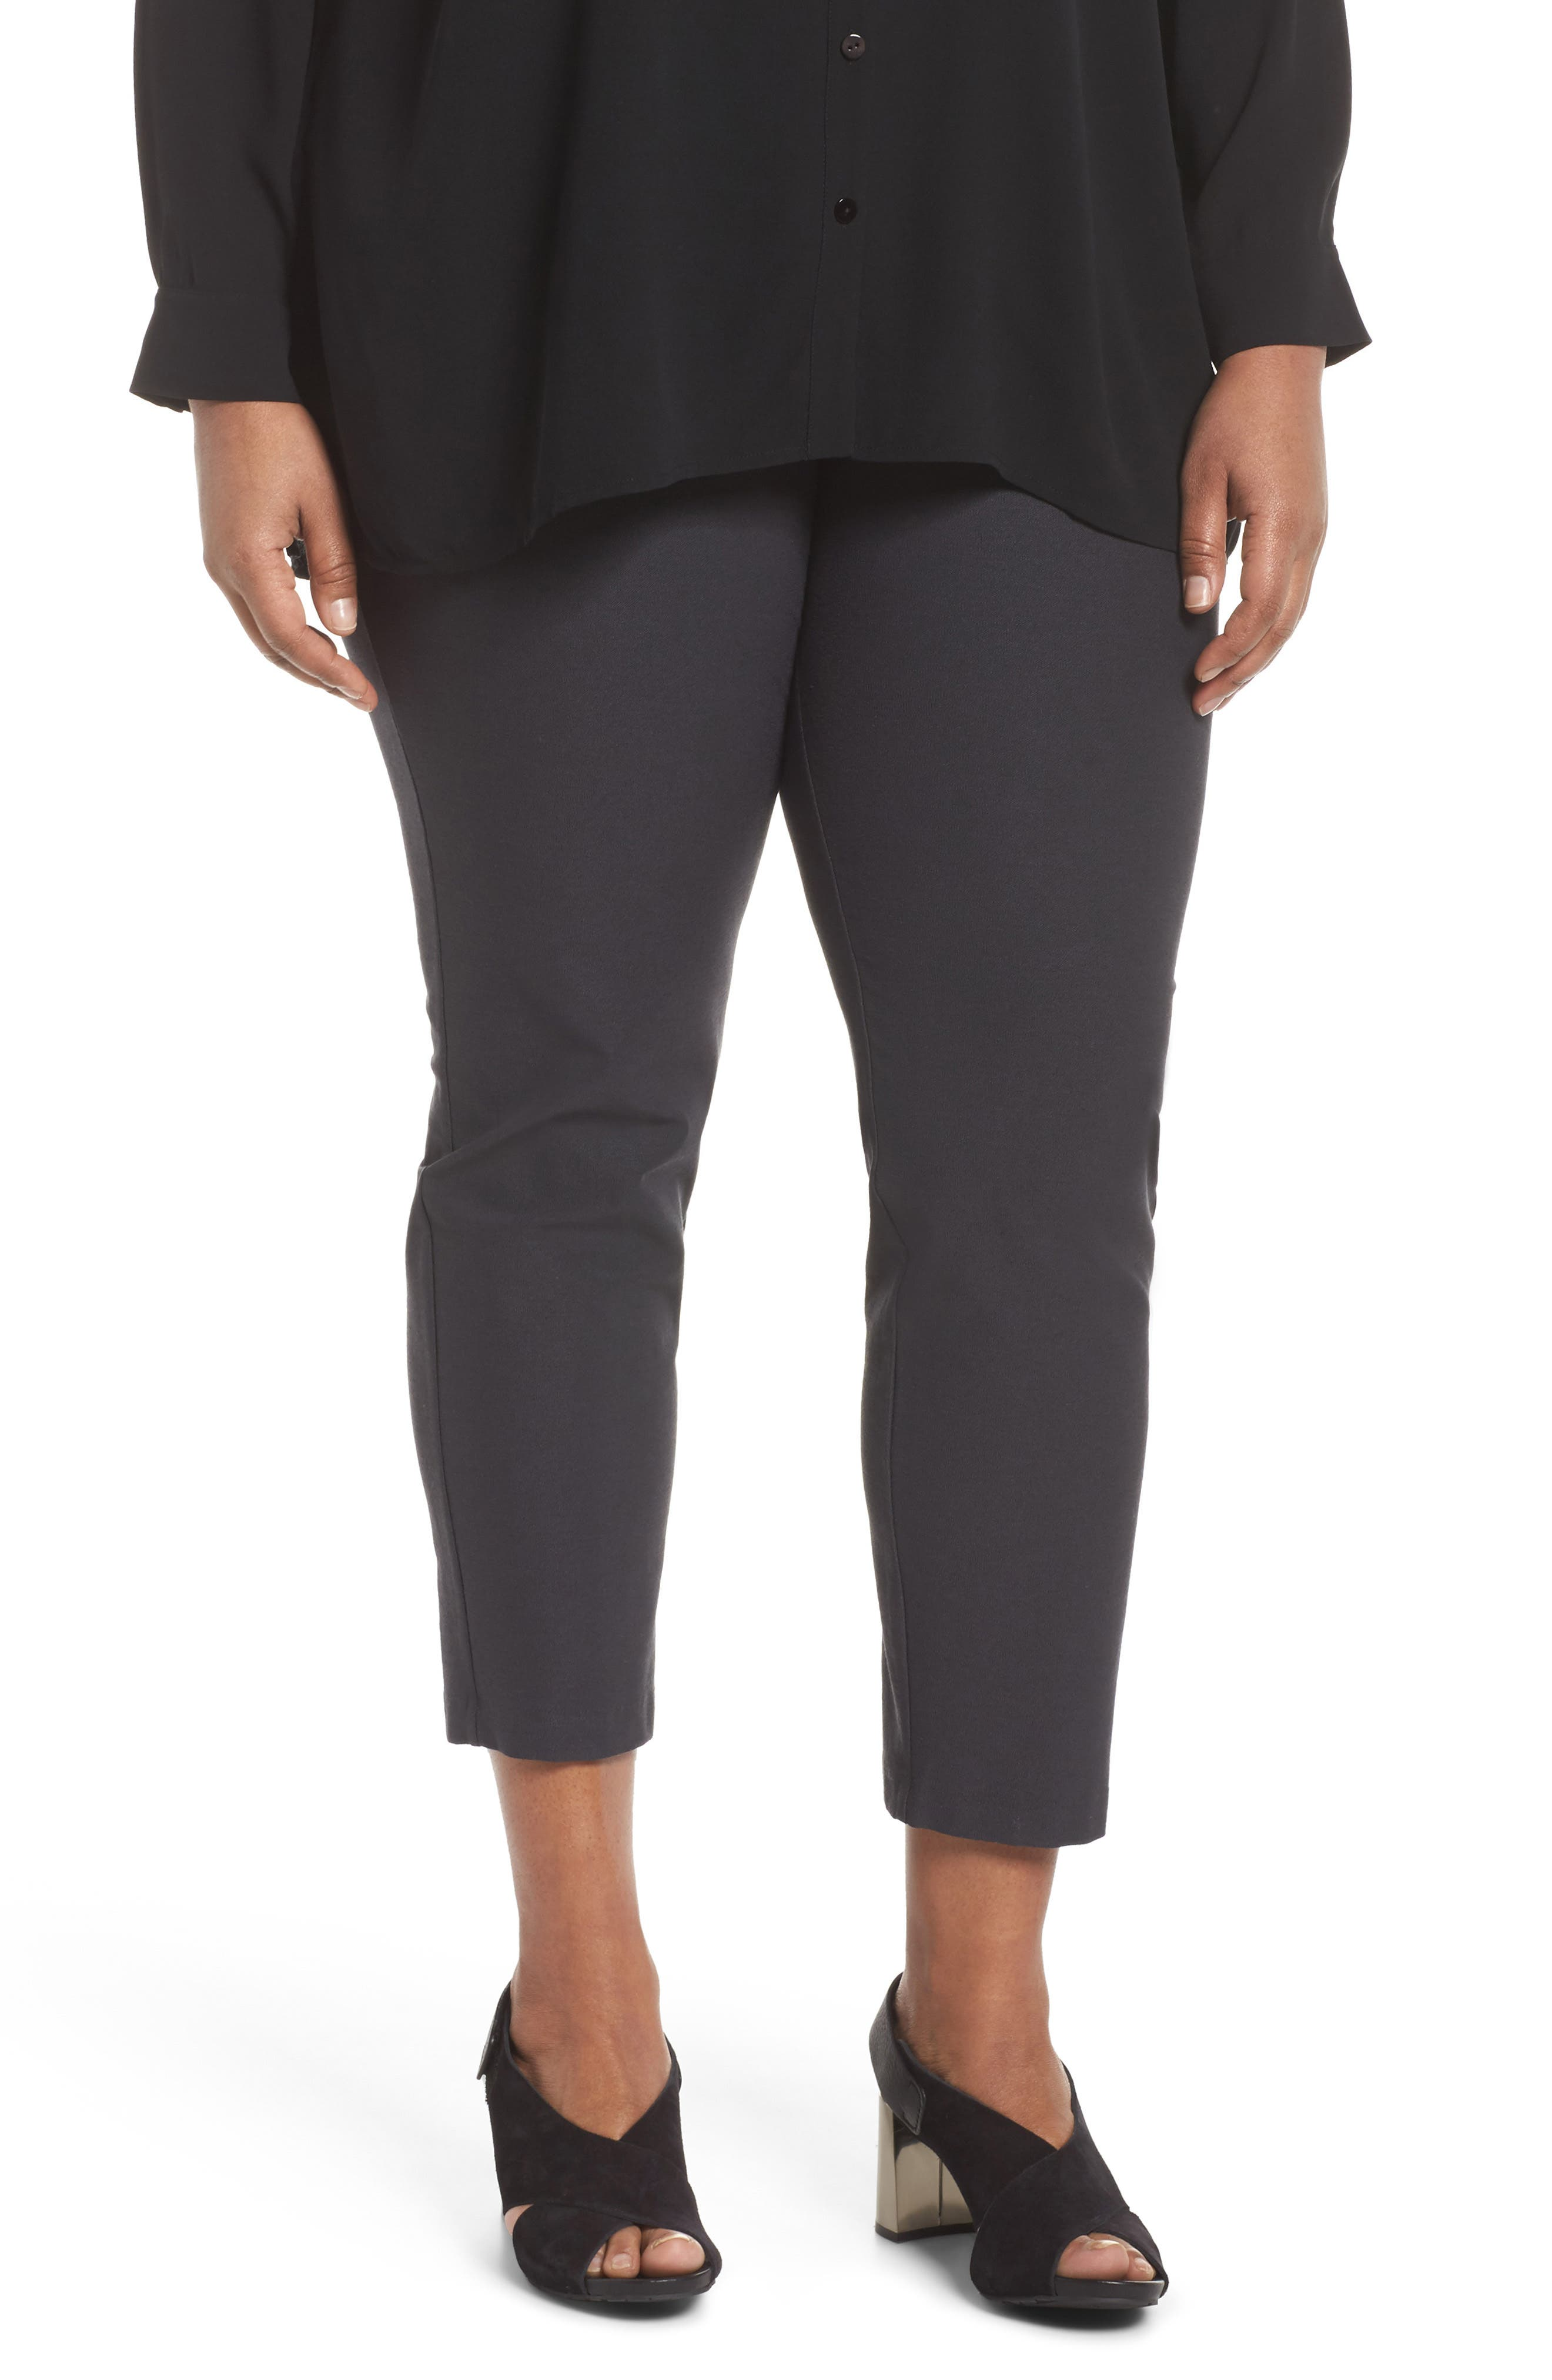 EILEEN FISHER, Slim Ankle Pants, Main thumbnail 1, color, 025